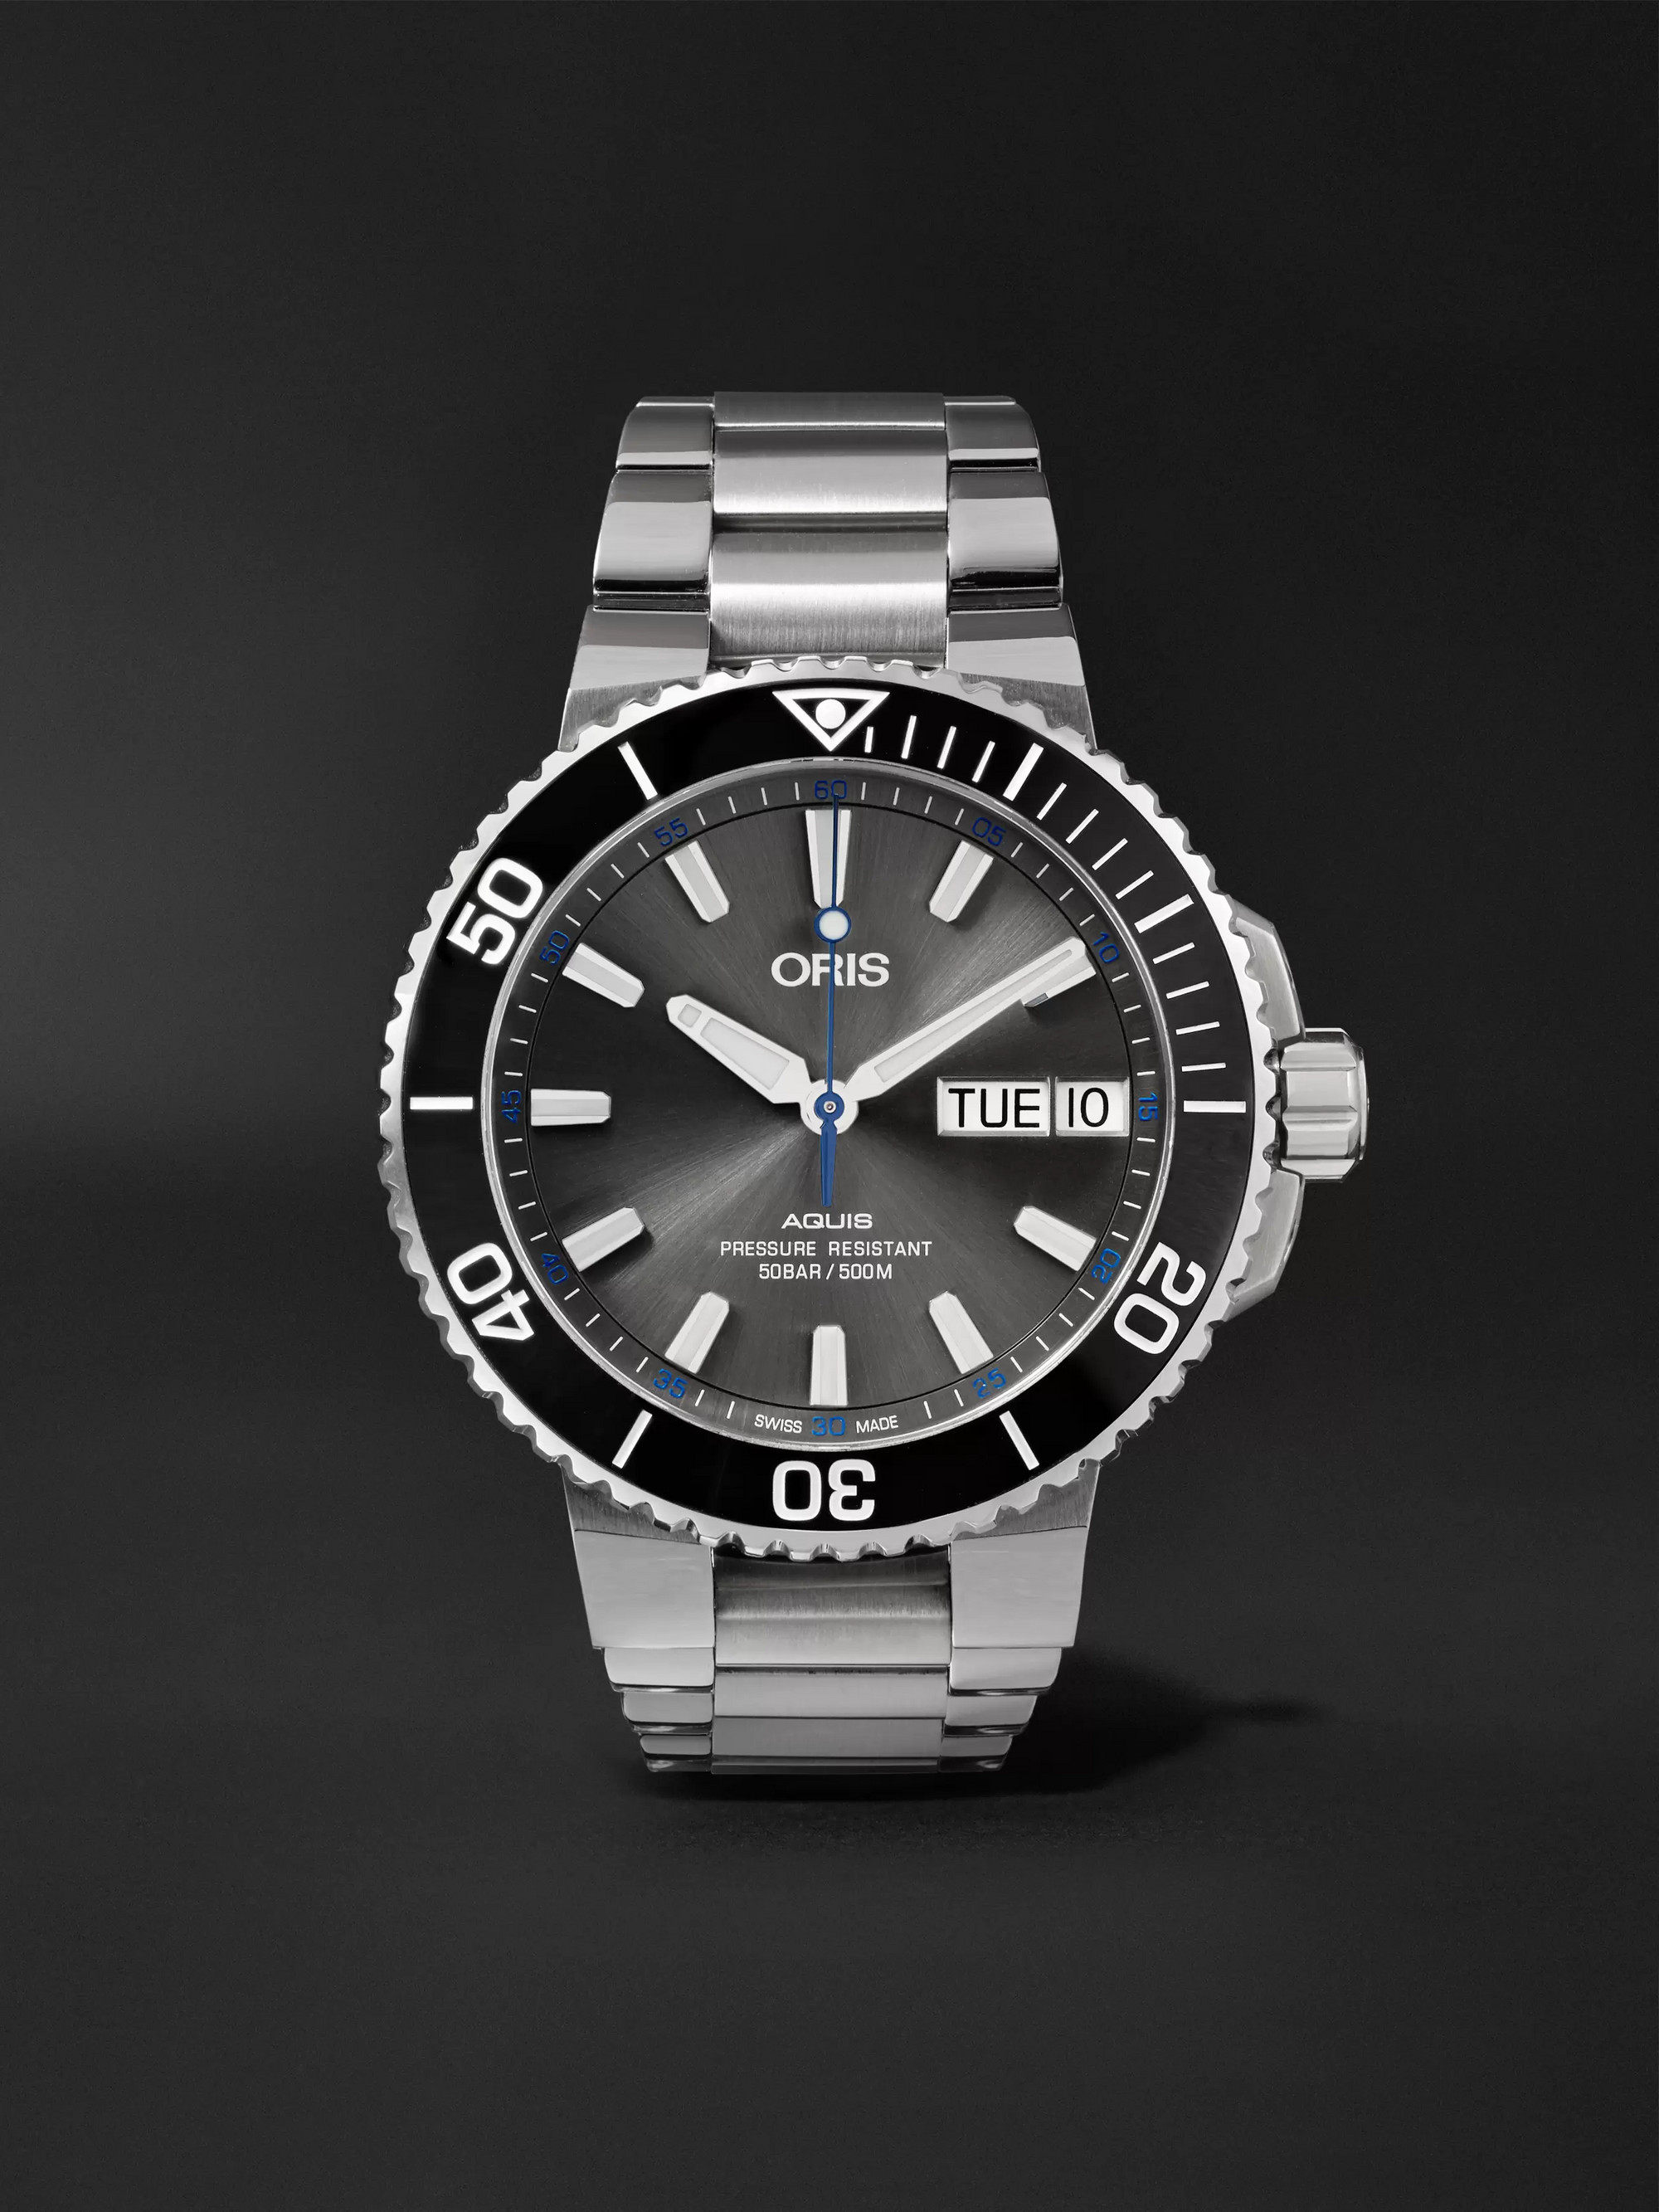 Oris Aquis Hammerhead Limited Edition Automatic 45.5mm Stainless Steel Watch